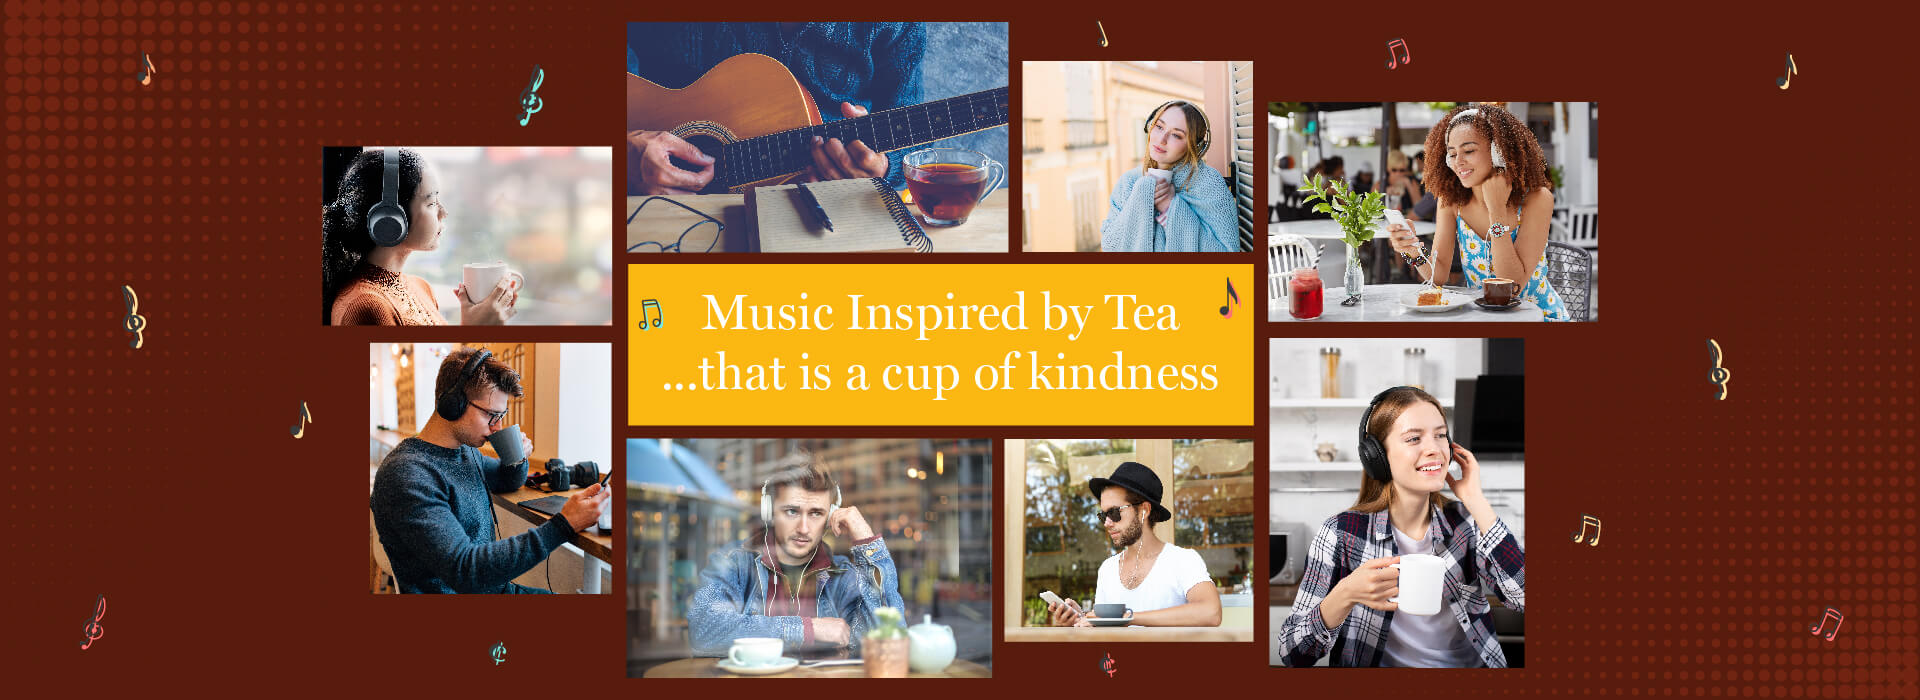 BMJ Music Inspired by Tea that is a cup of kindness